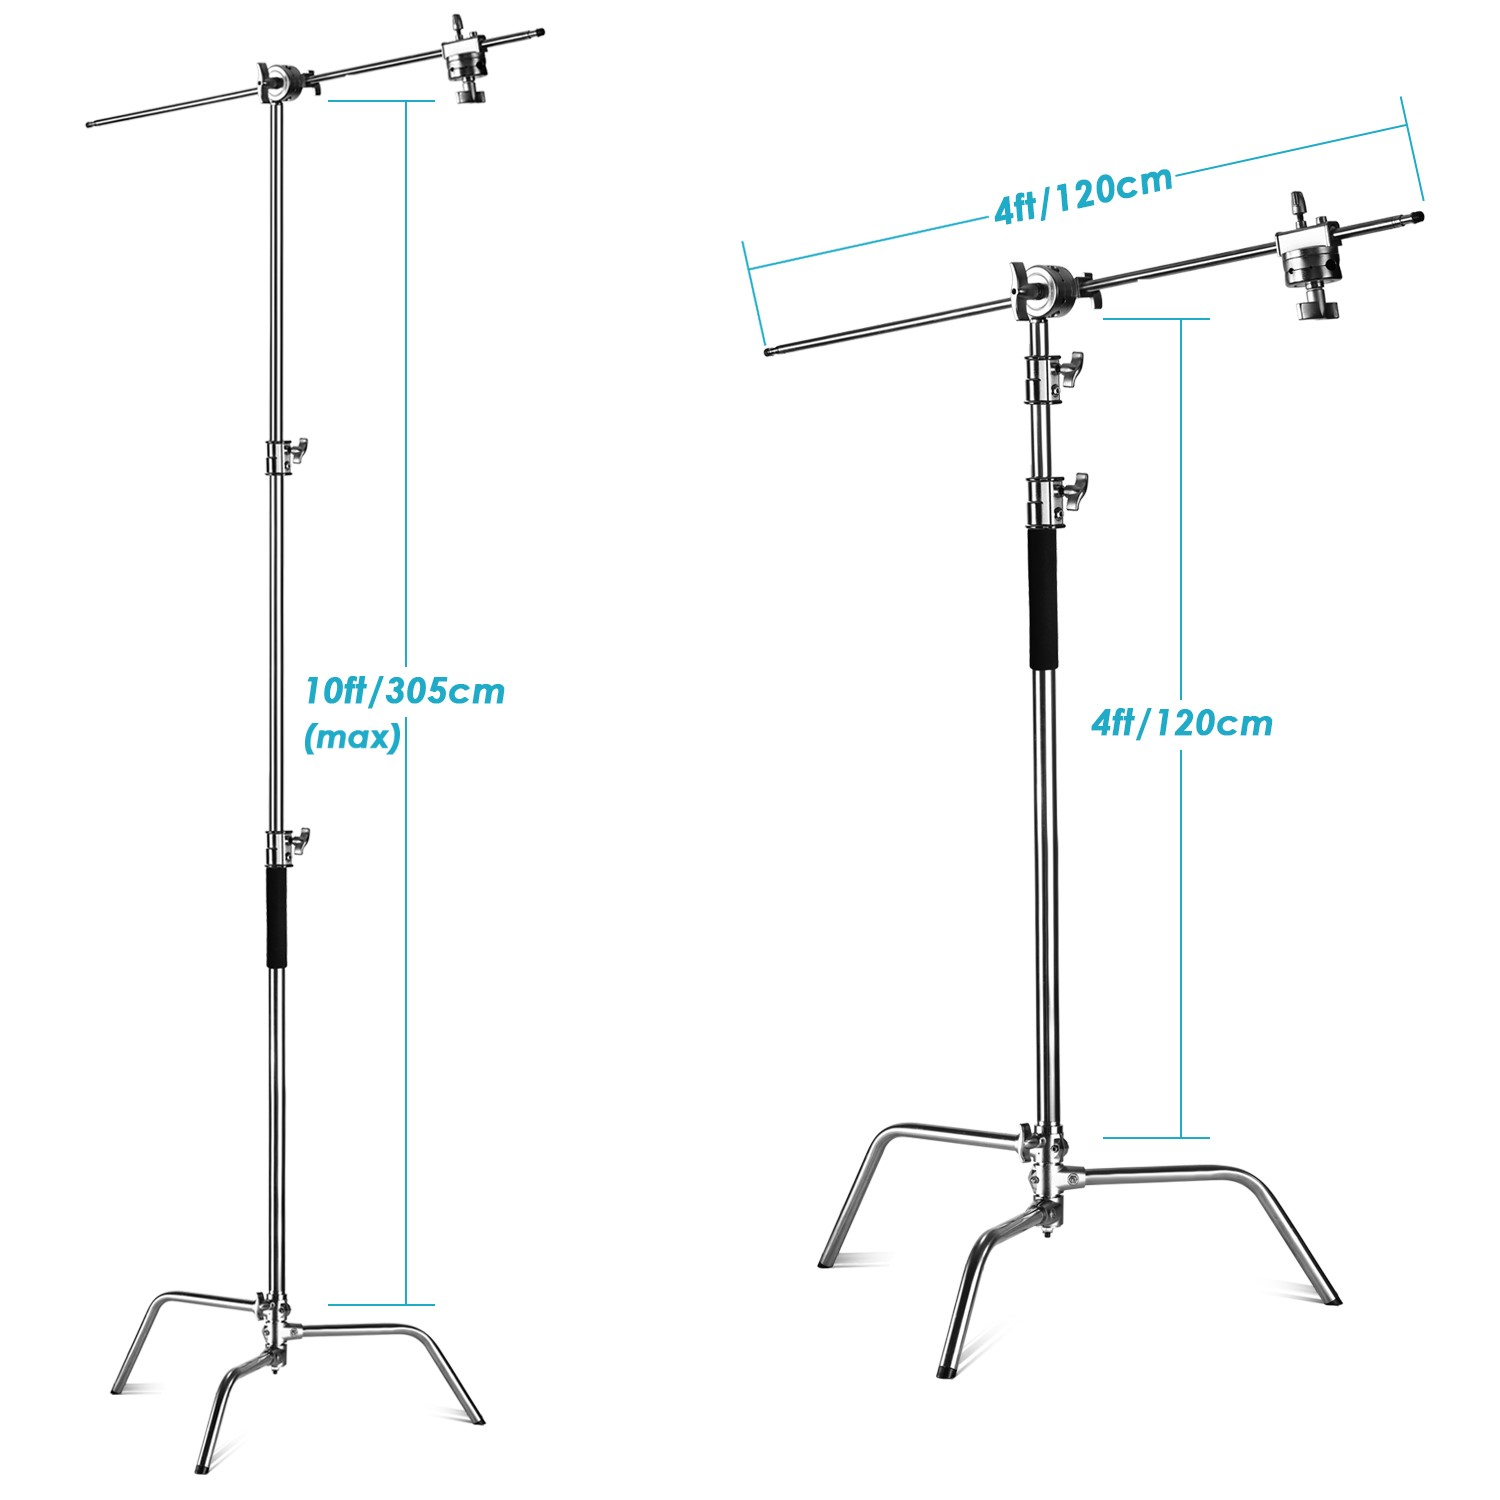 C-Stand Adjustable 10 feet/3 Meters with 4 feet/1.2 Meters Holding Arm and 2 Pieces Grip Head for Photography Studio Video Reflector, Monolight and Others (3-Pack) similar-image